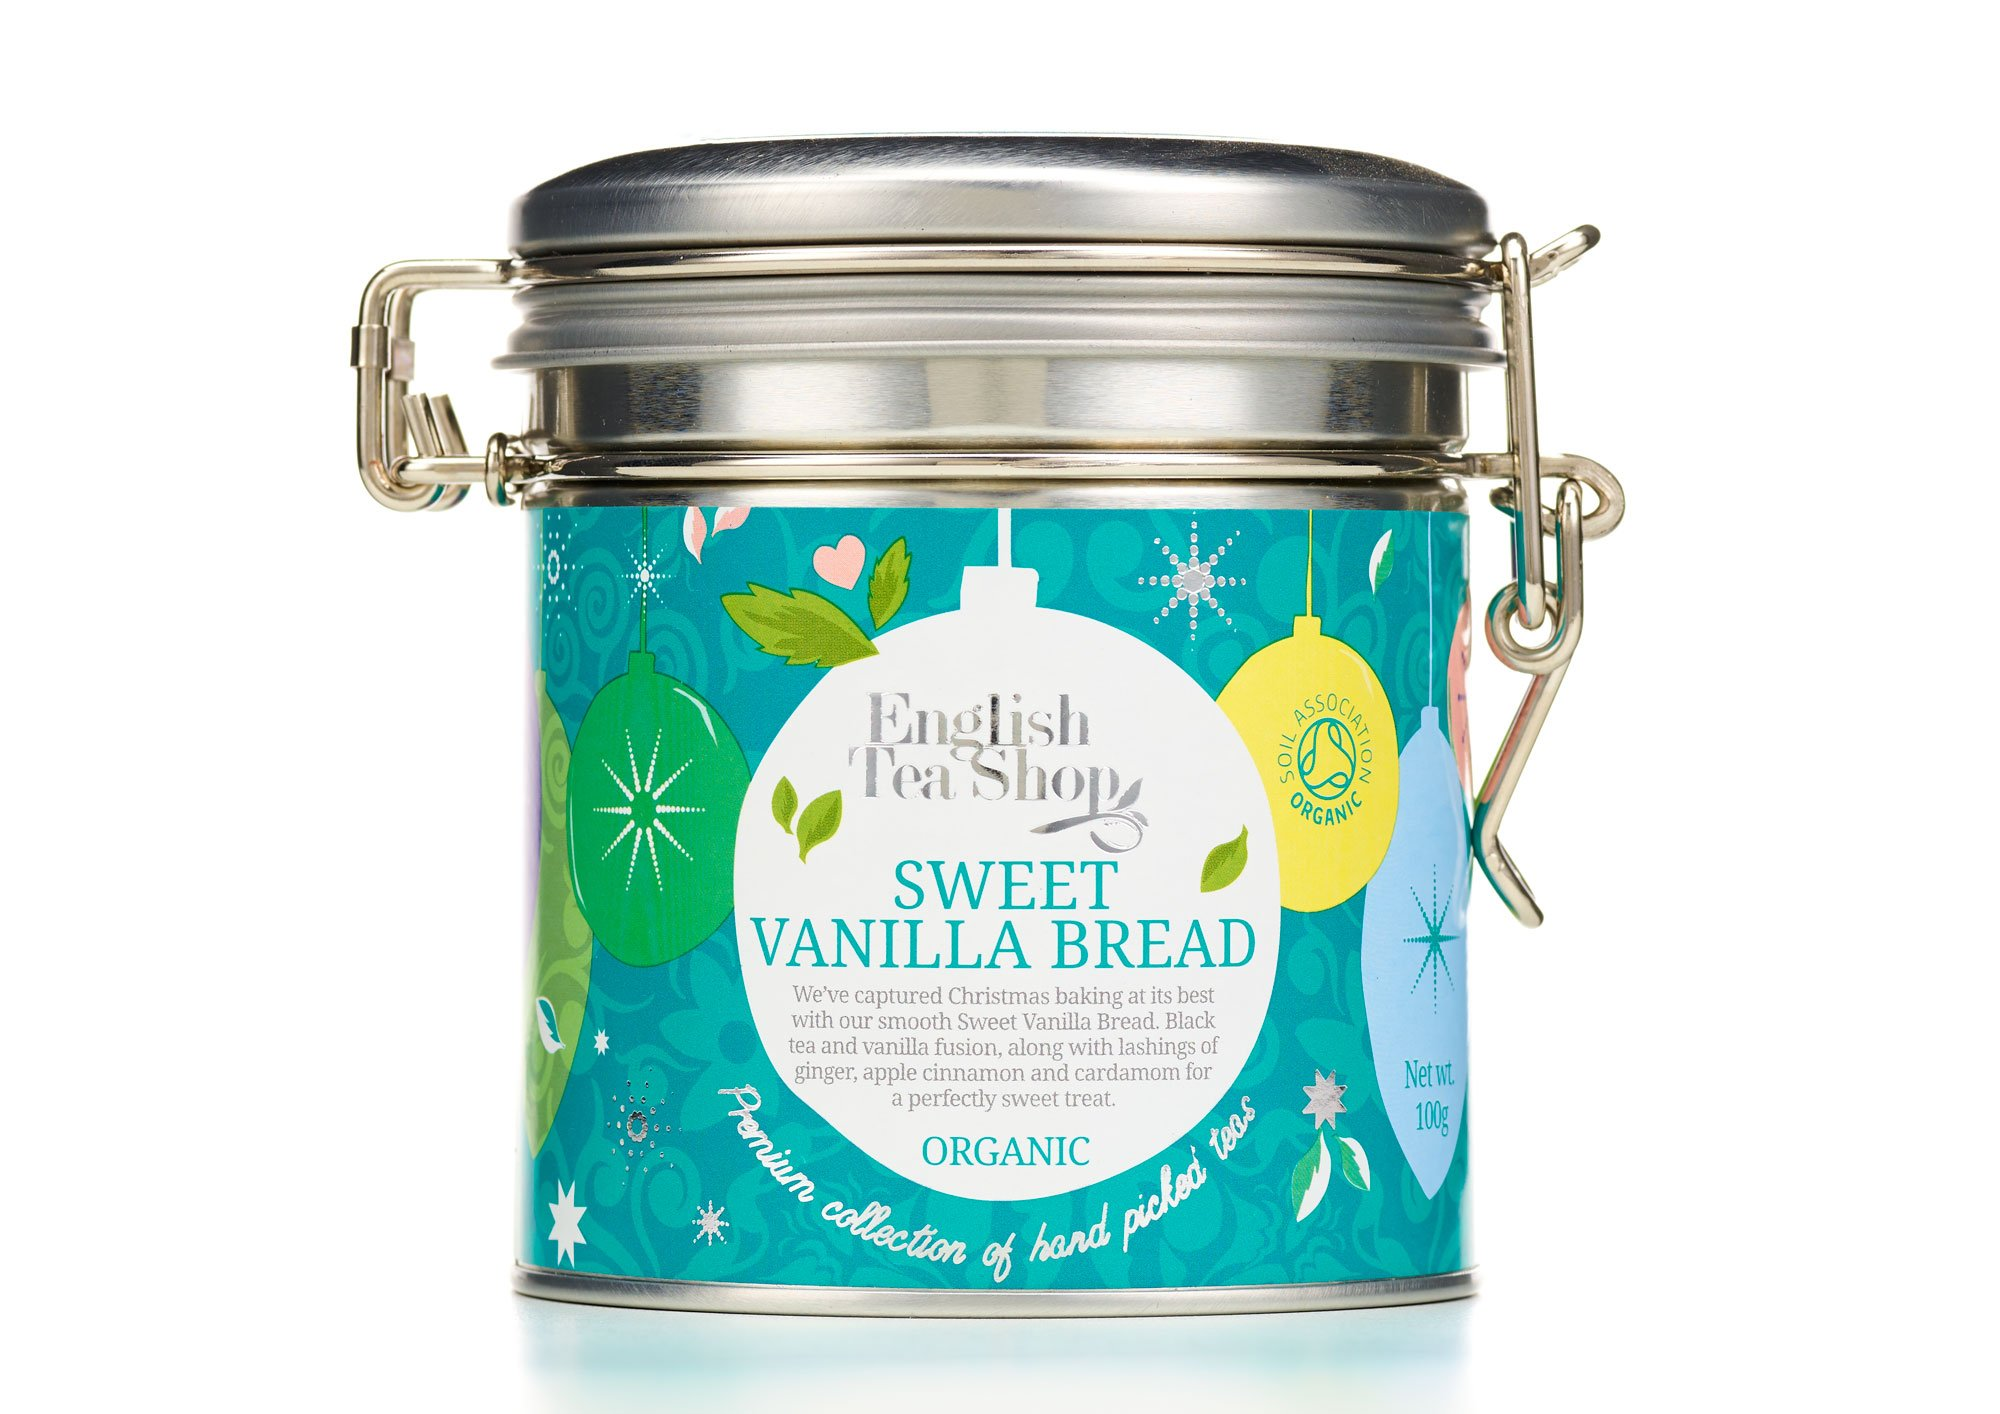 English Tea Shop Sweet Vanilla Bread Loose Tea in Clip Tin, 100 Gram by English Tea Shop